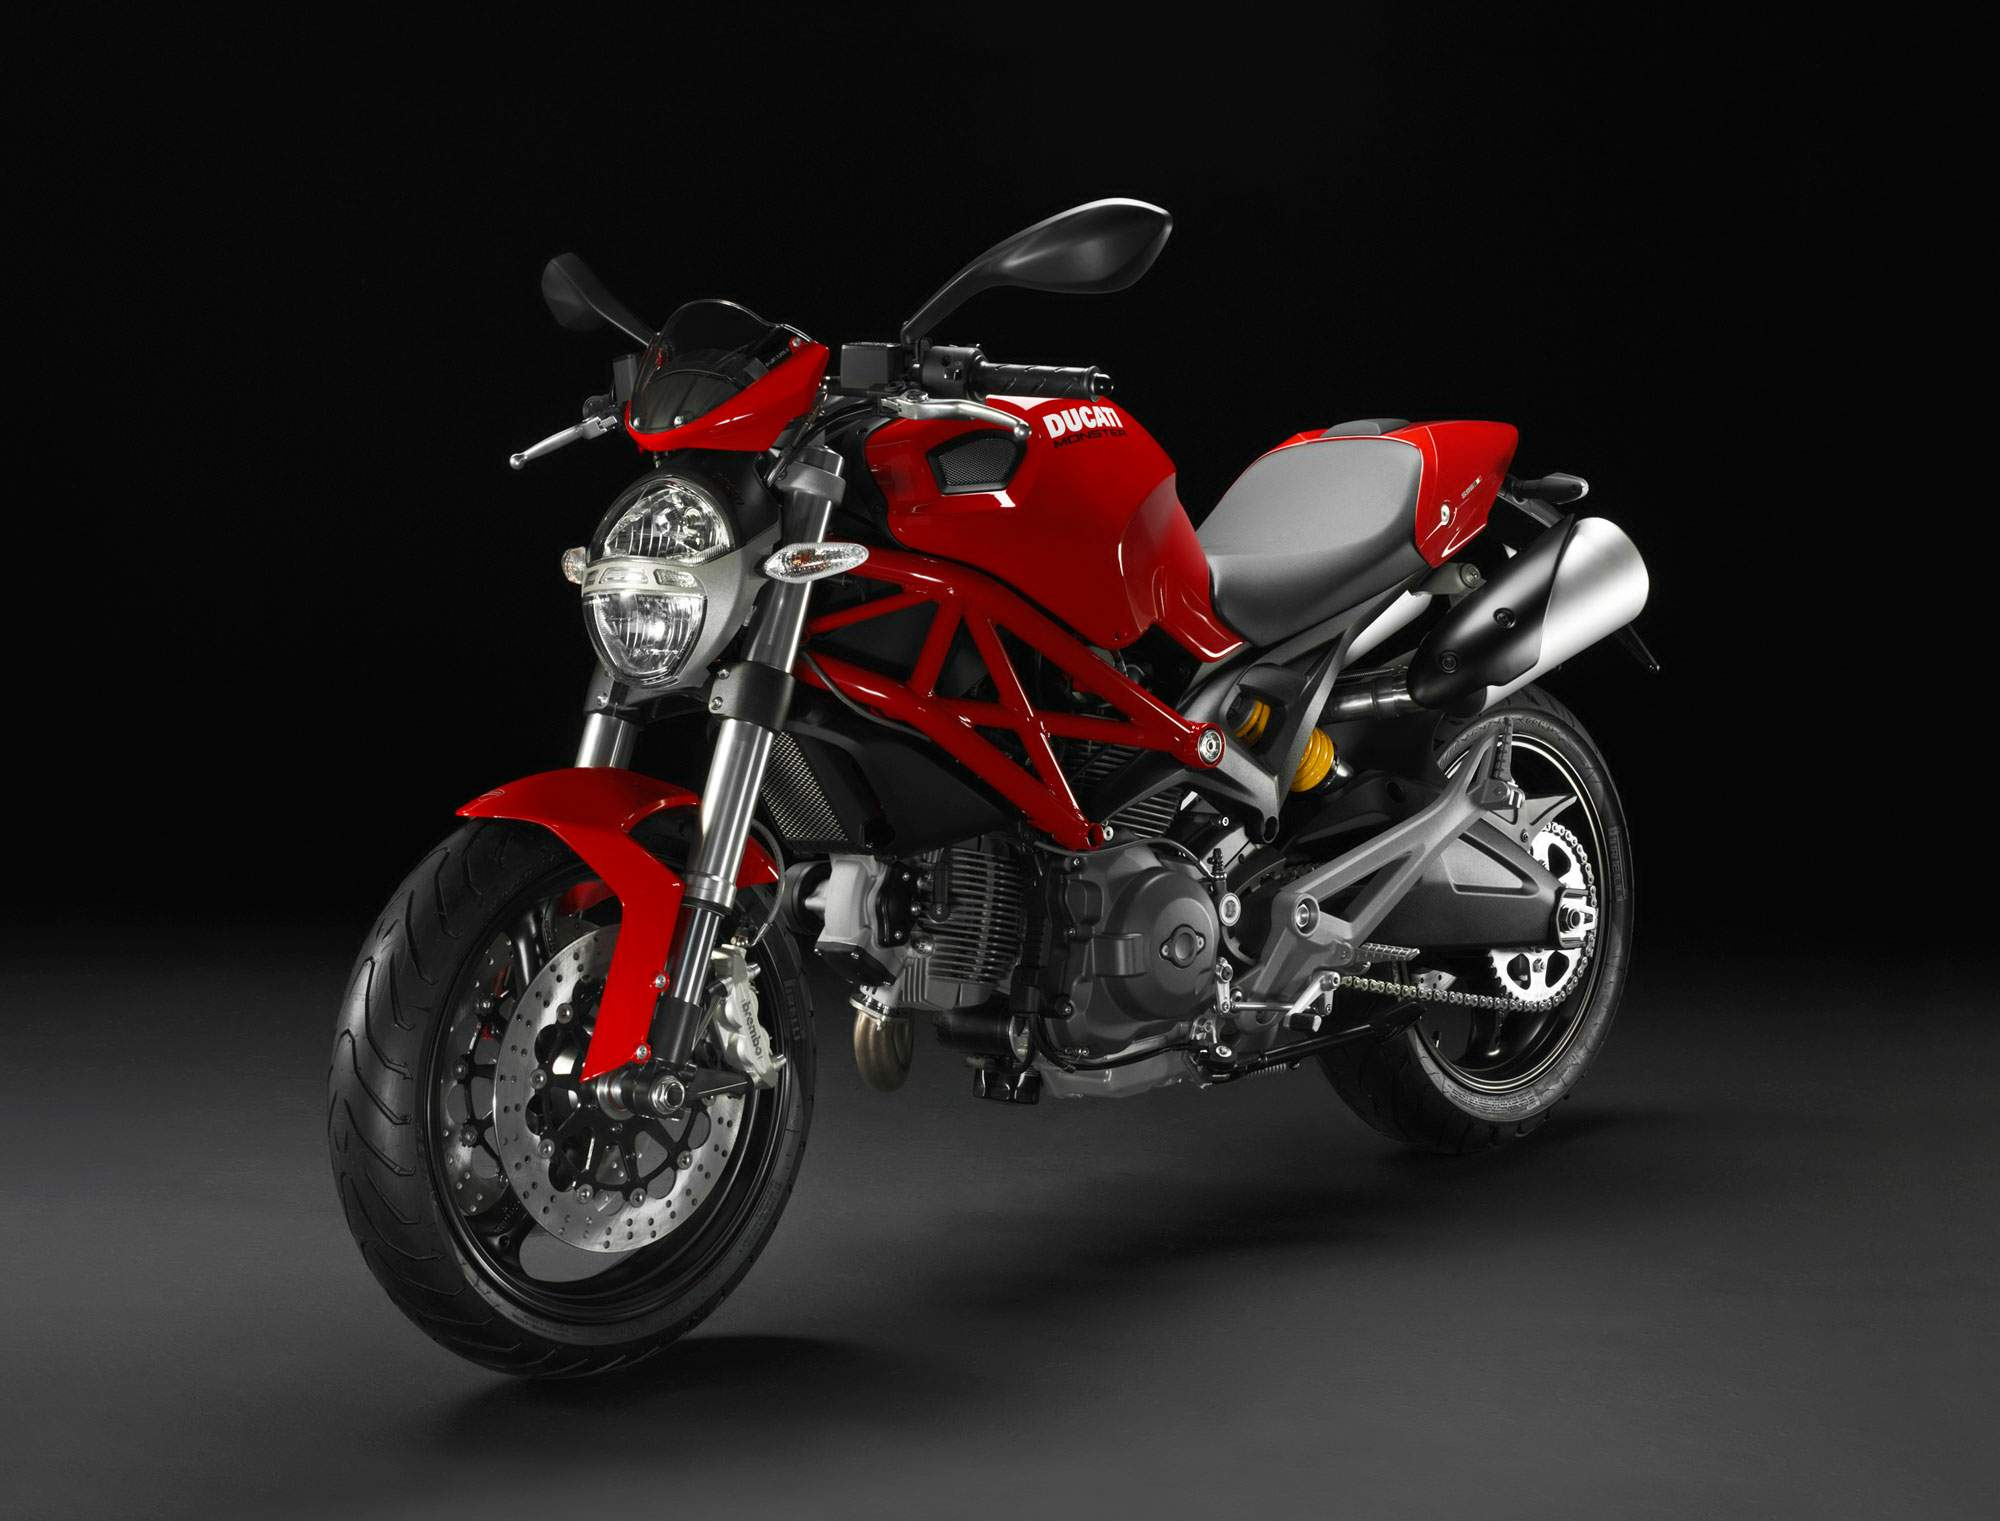 Мотоцикл Ducati Monster 696 20th Anniversary 2013